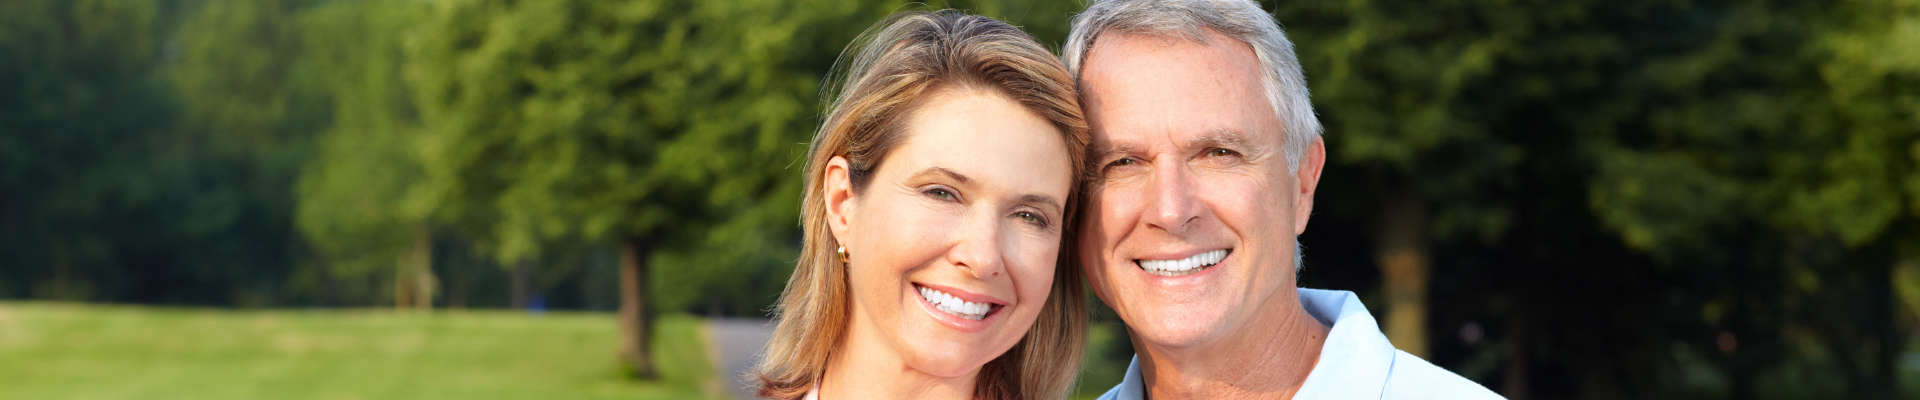 A middle age couple smiling.